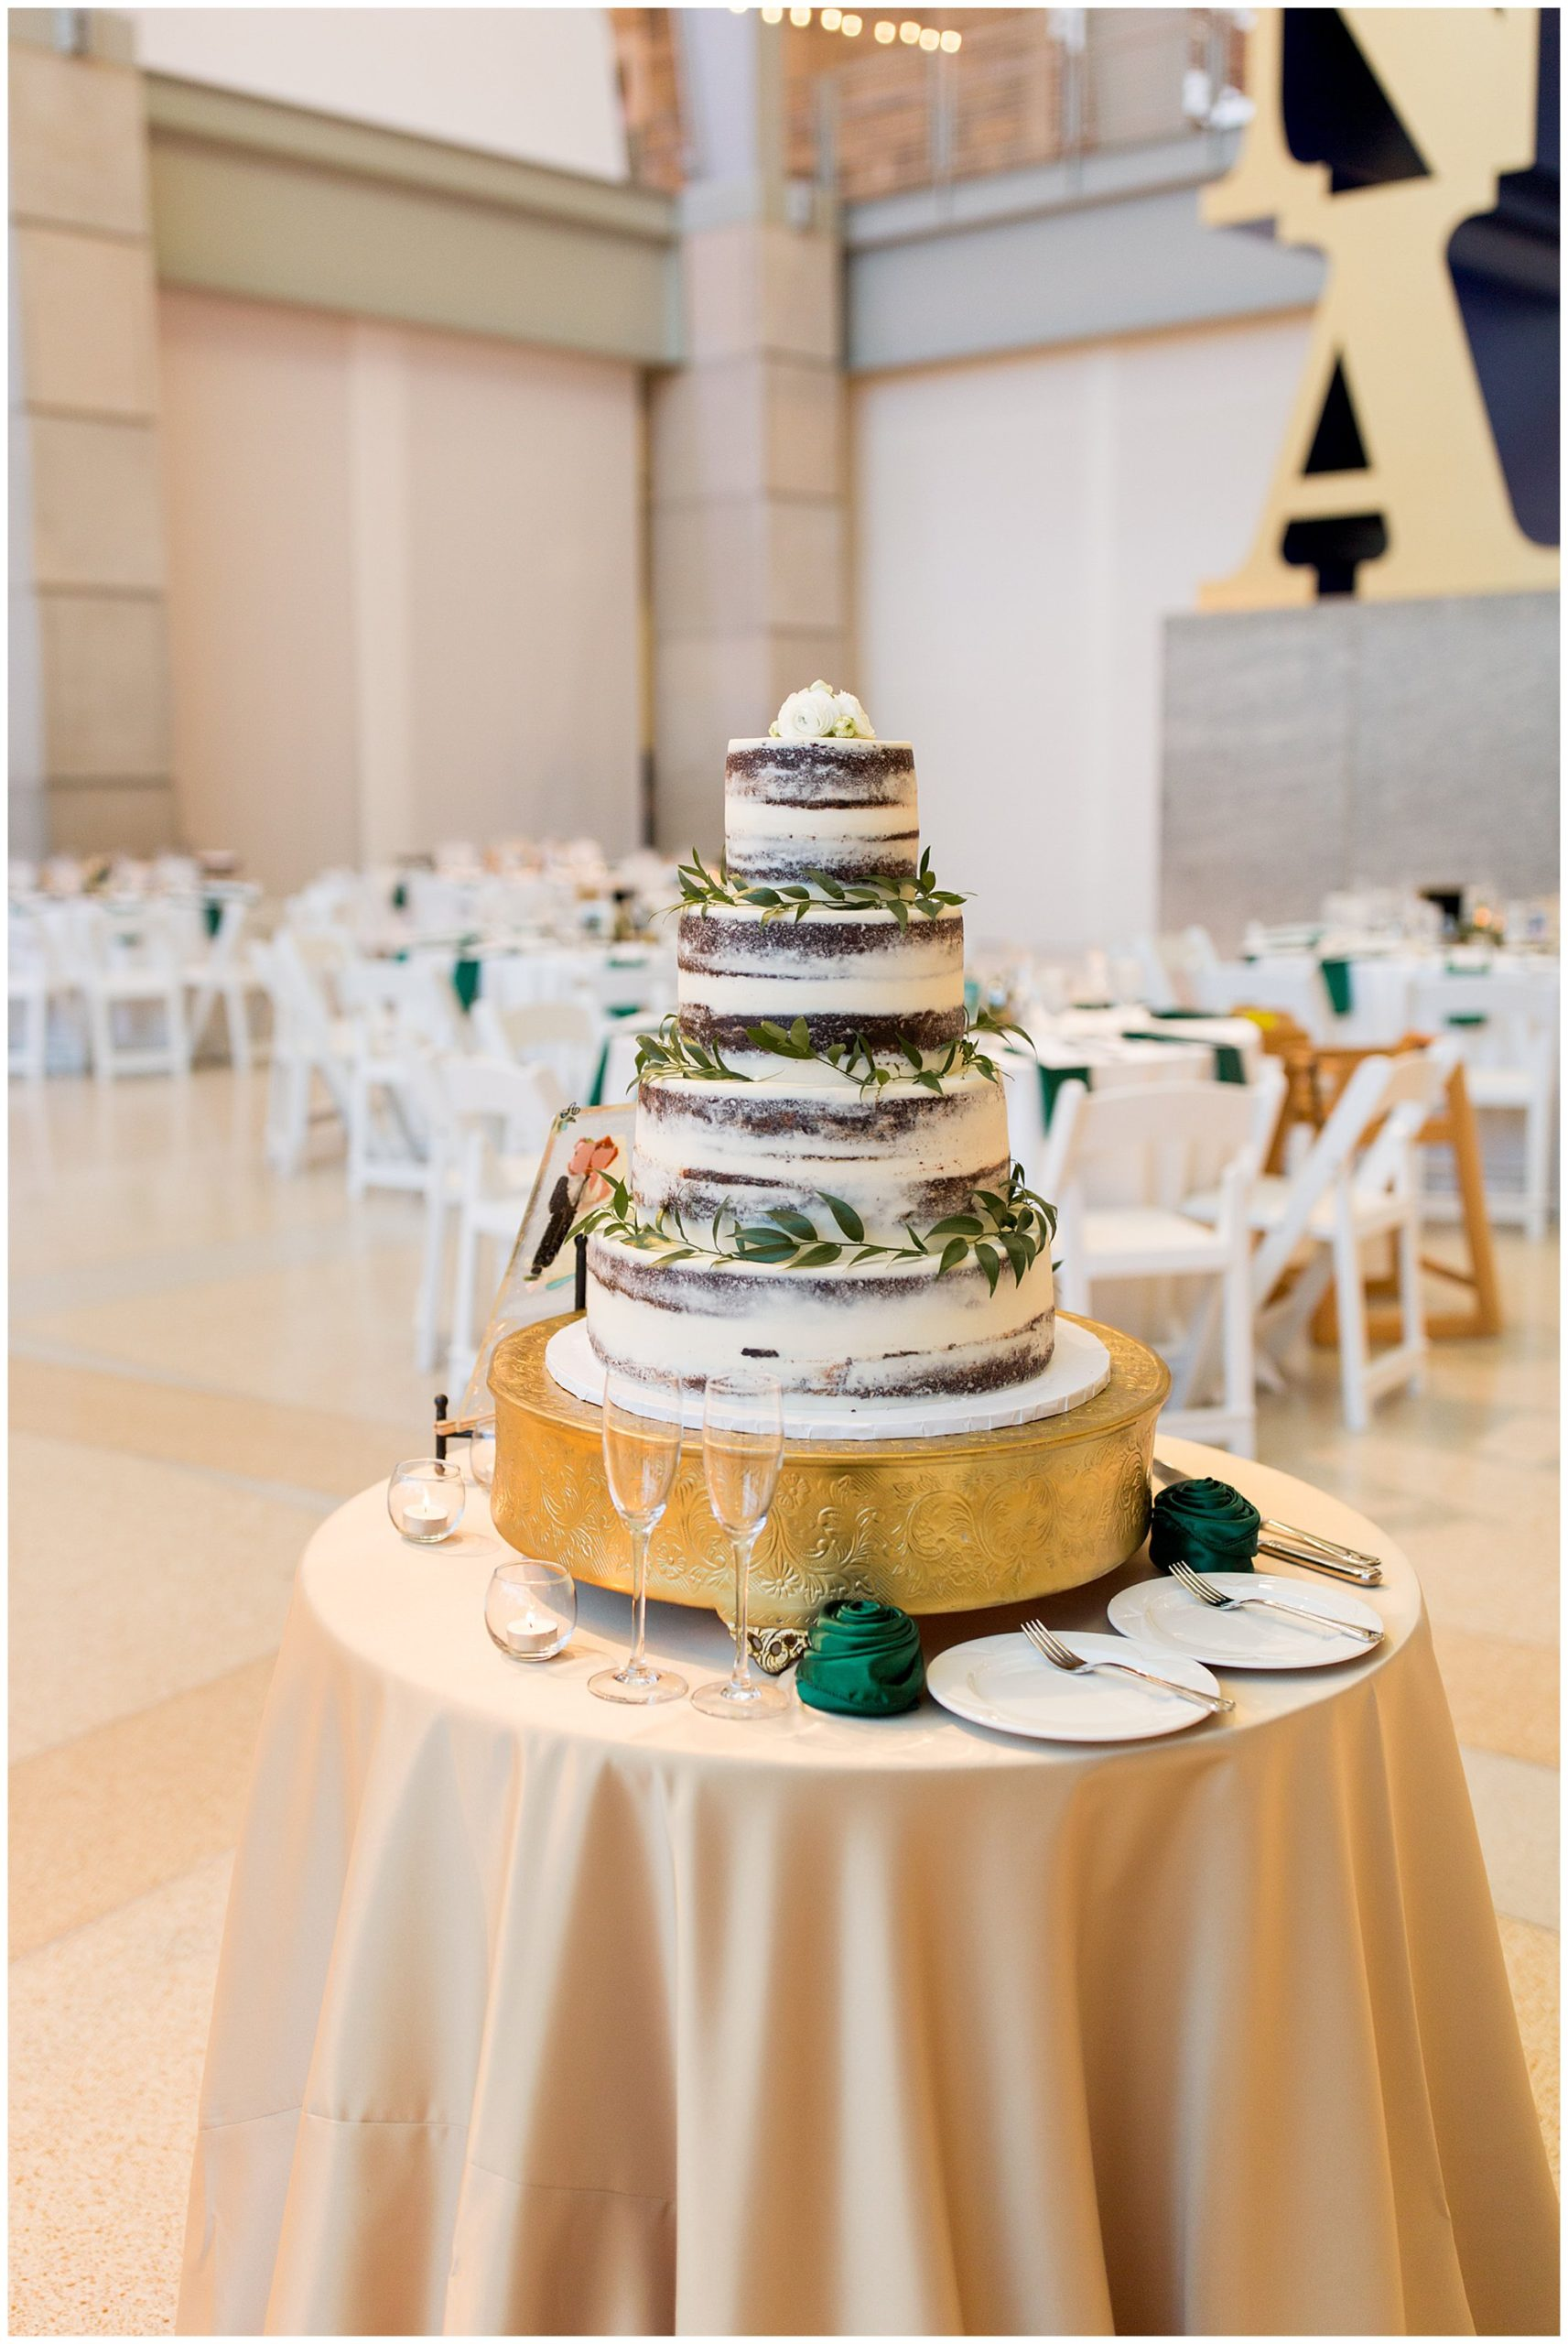 wedding cake from Kahn's Catering